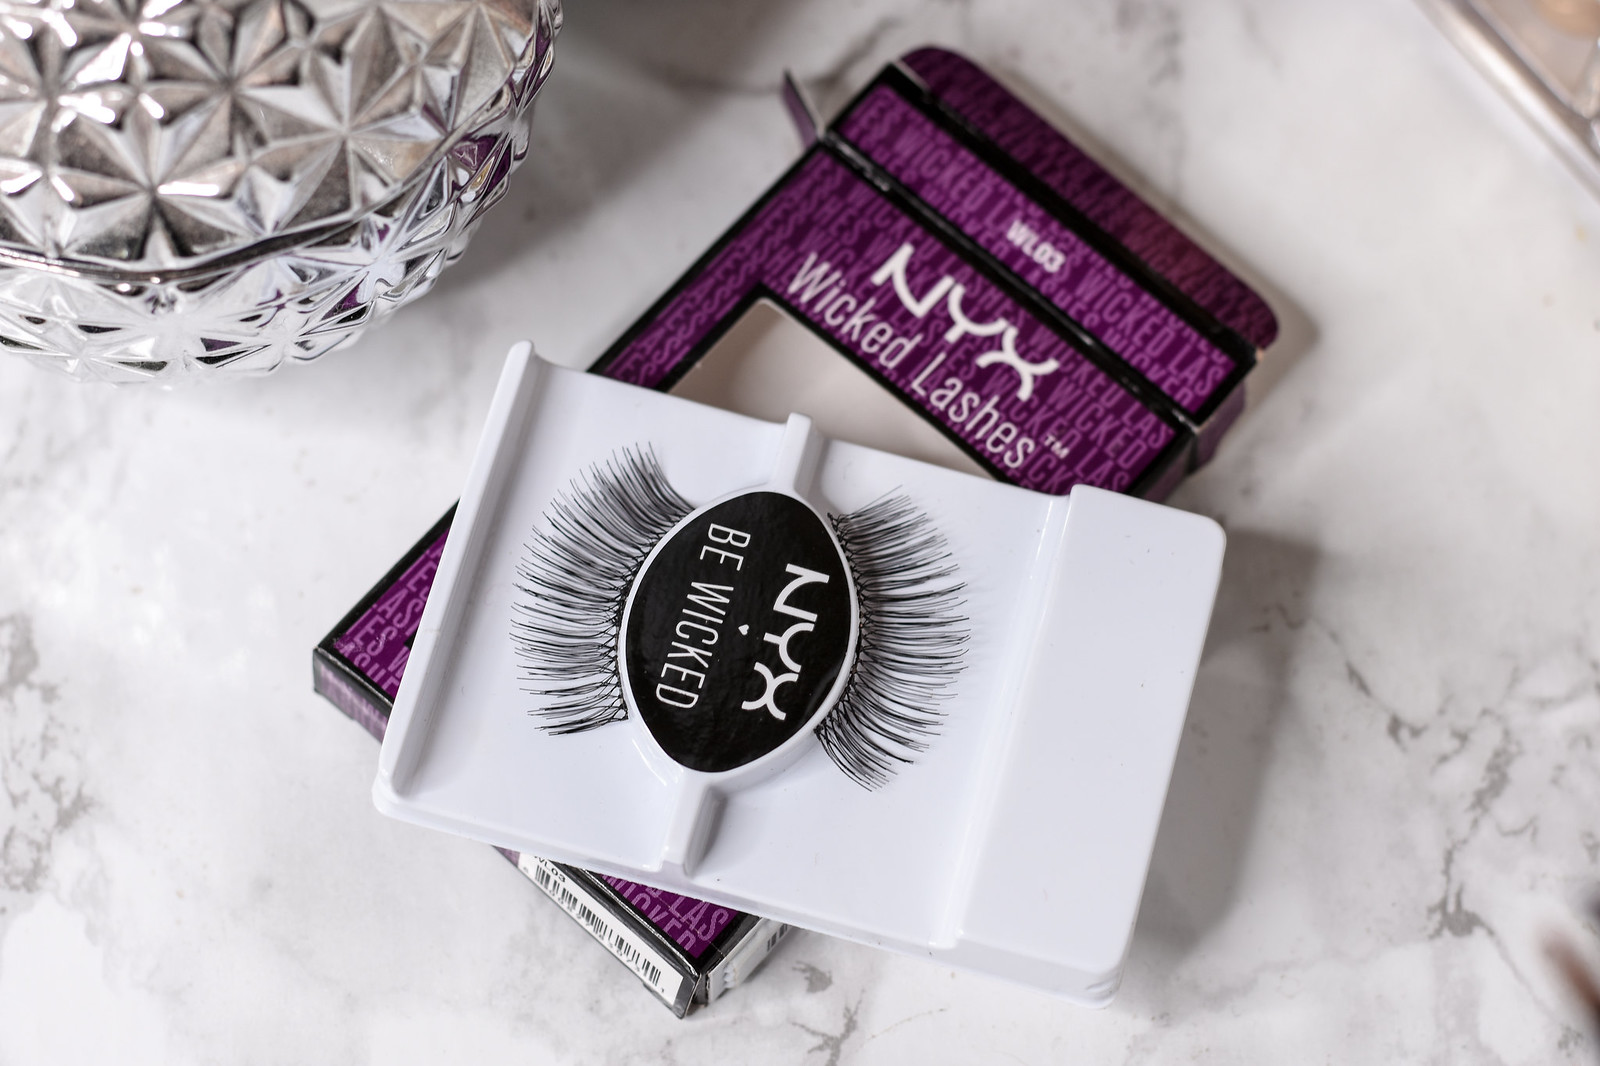 NYX Wicked Lashes 'Fatale' review